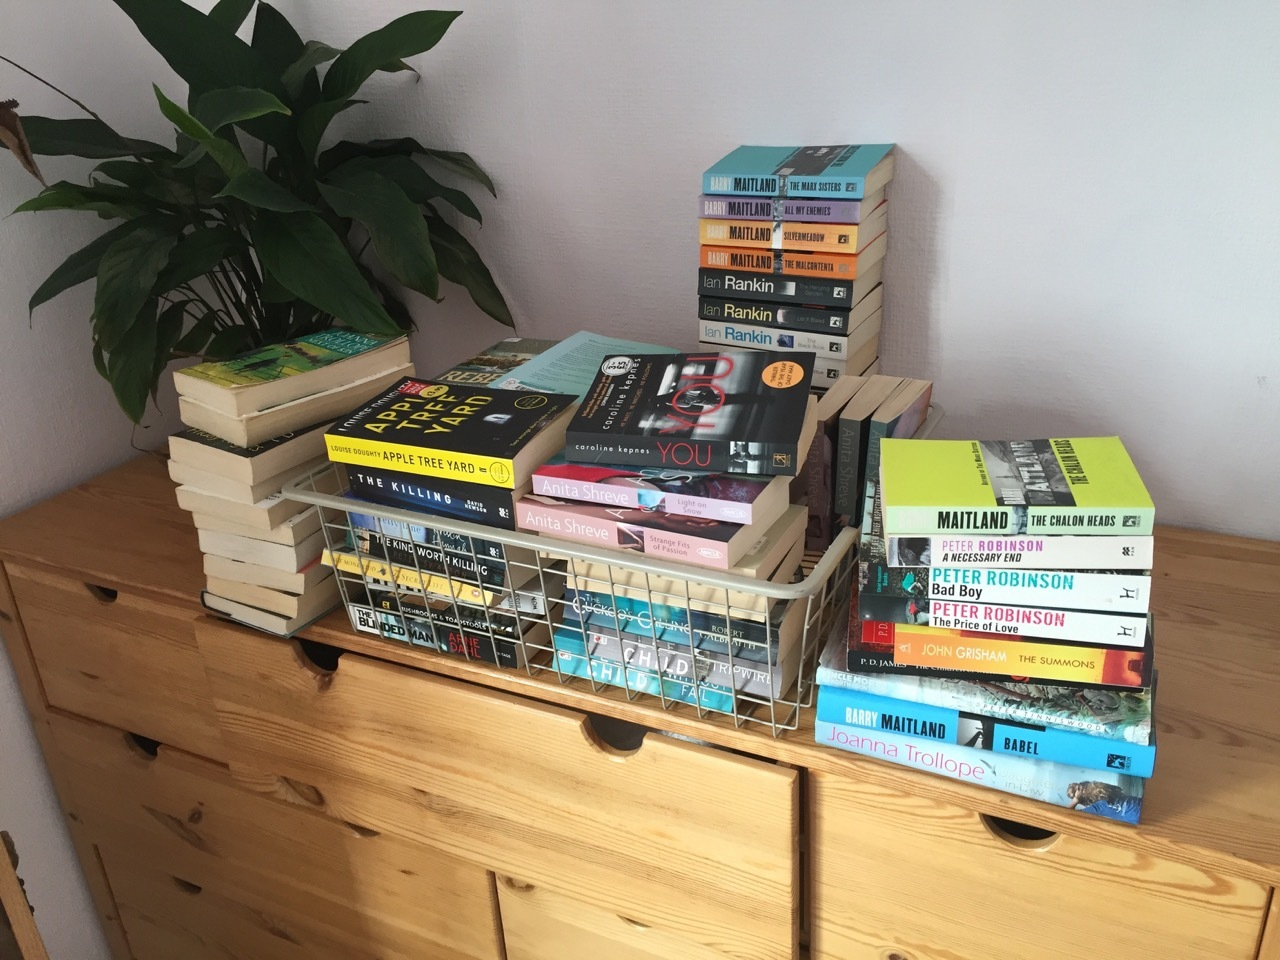 Too many books!